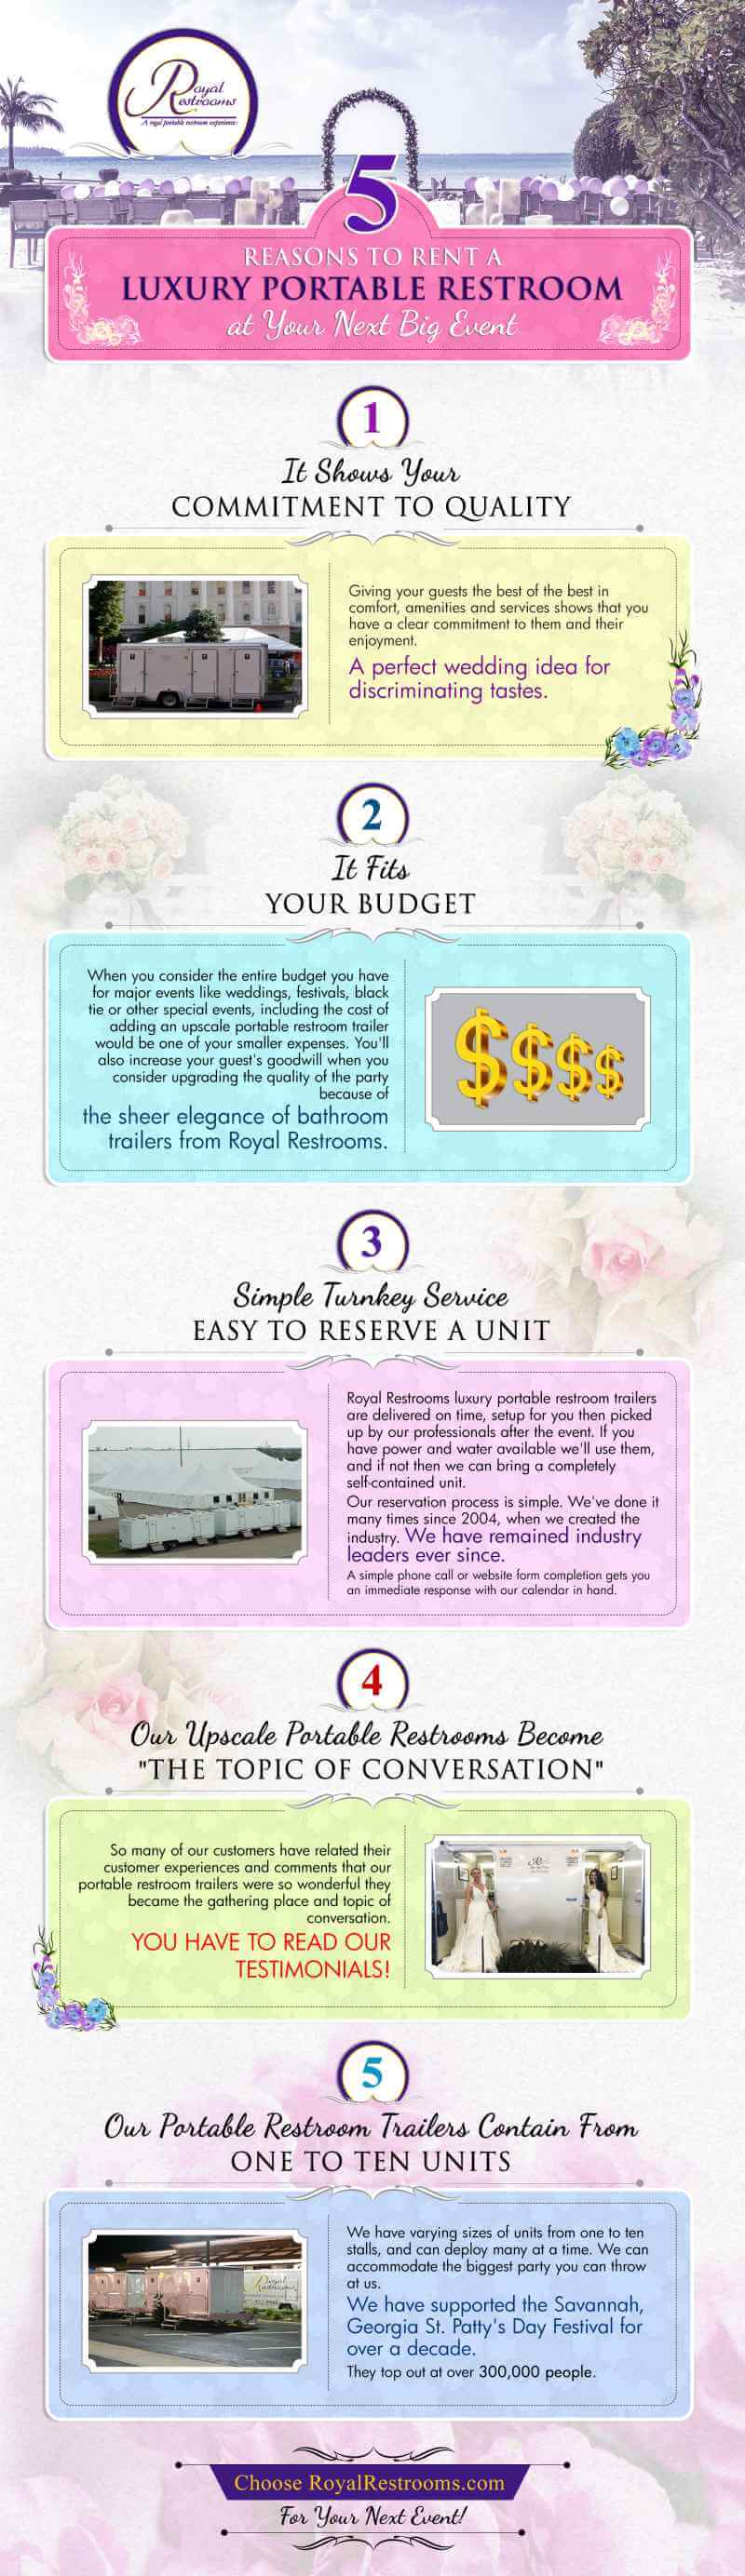 5 Reasons To Rent Luxury Portable Restrooms for Your Next Special Event [INFOGRAPHIC]